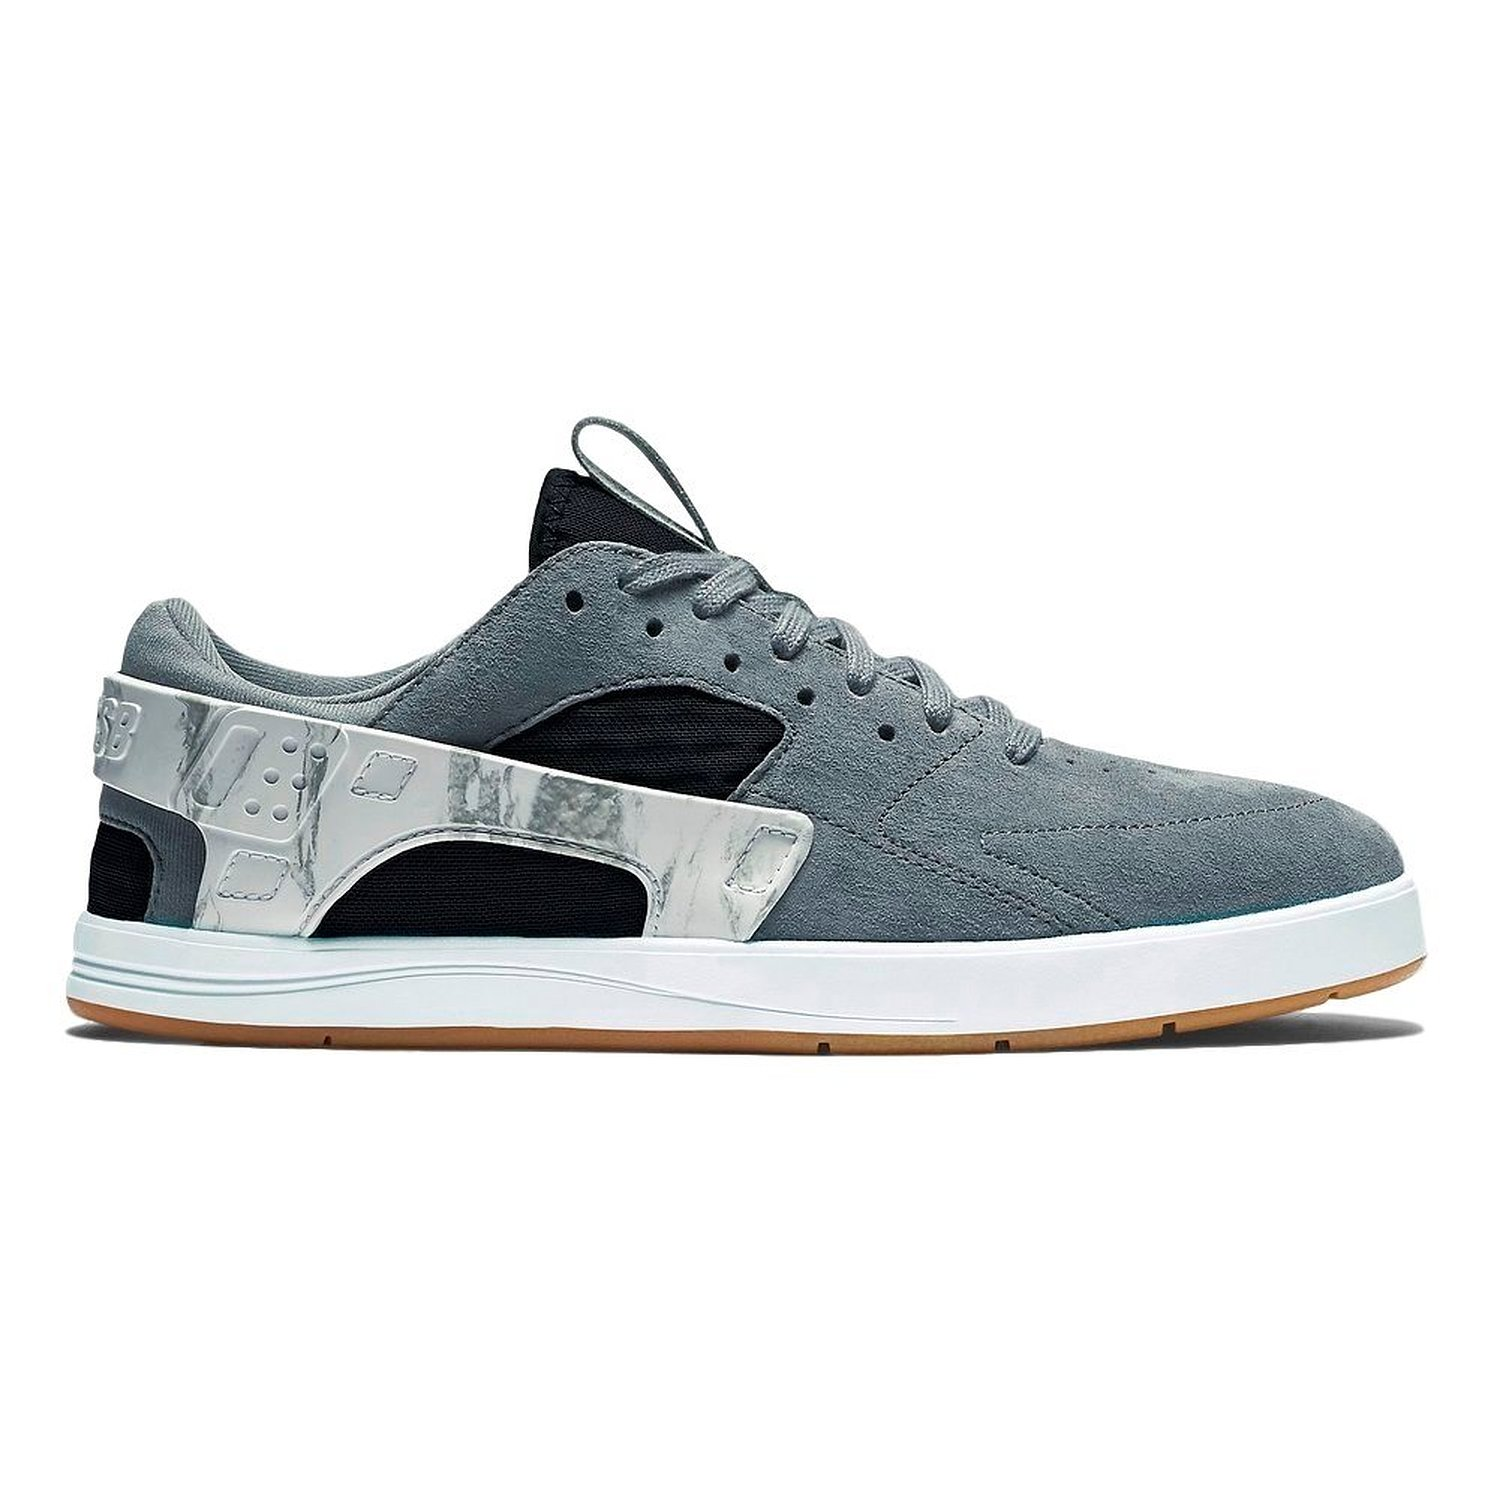 Cheap deals Es Eric Koston, find Es Eric Koston deals Cheap on line at Alibaba  6ab80f